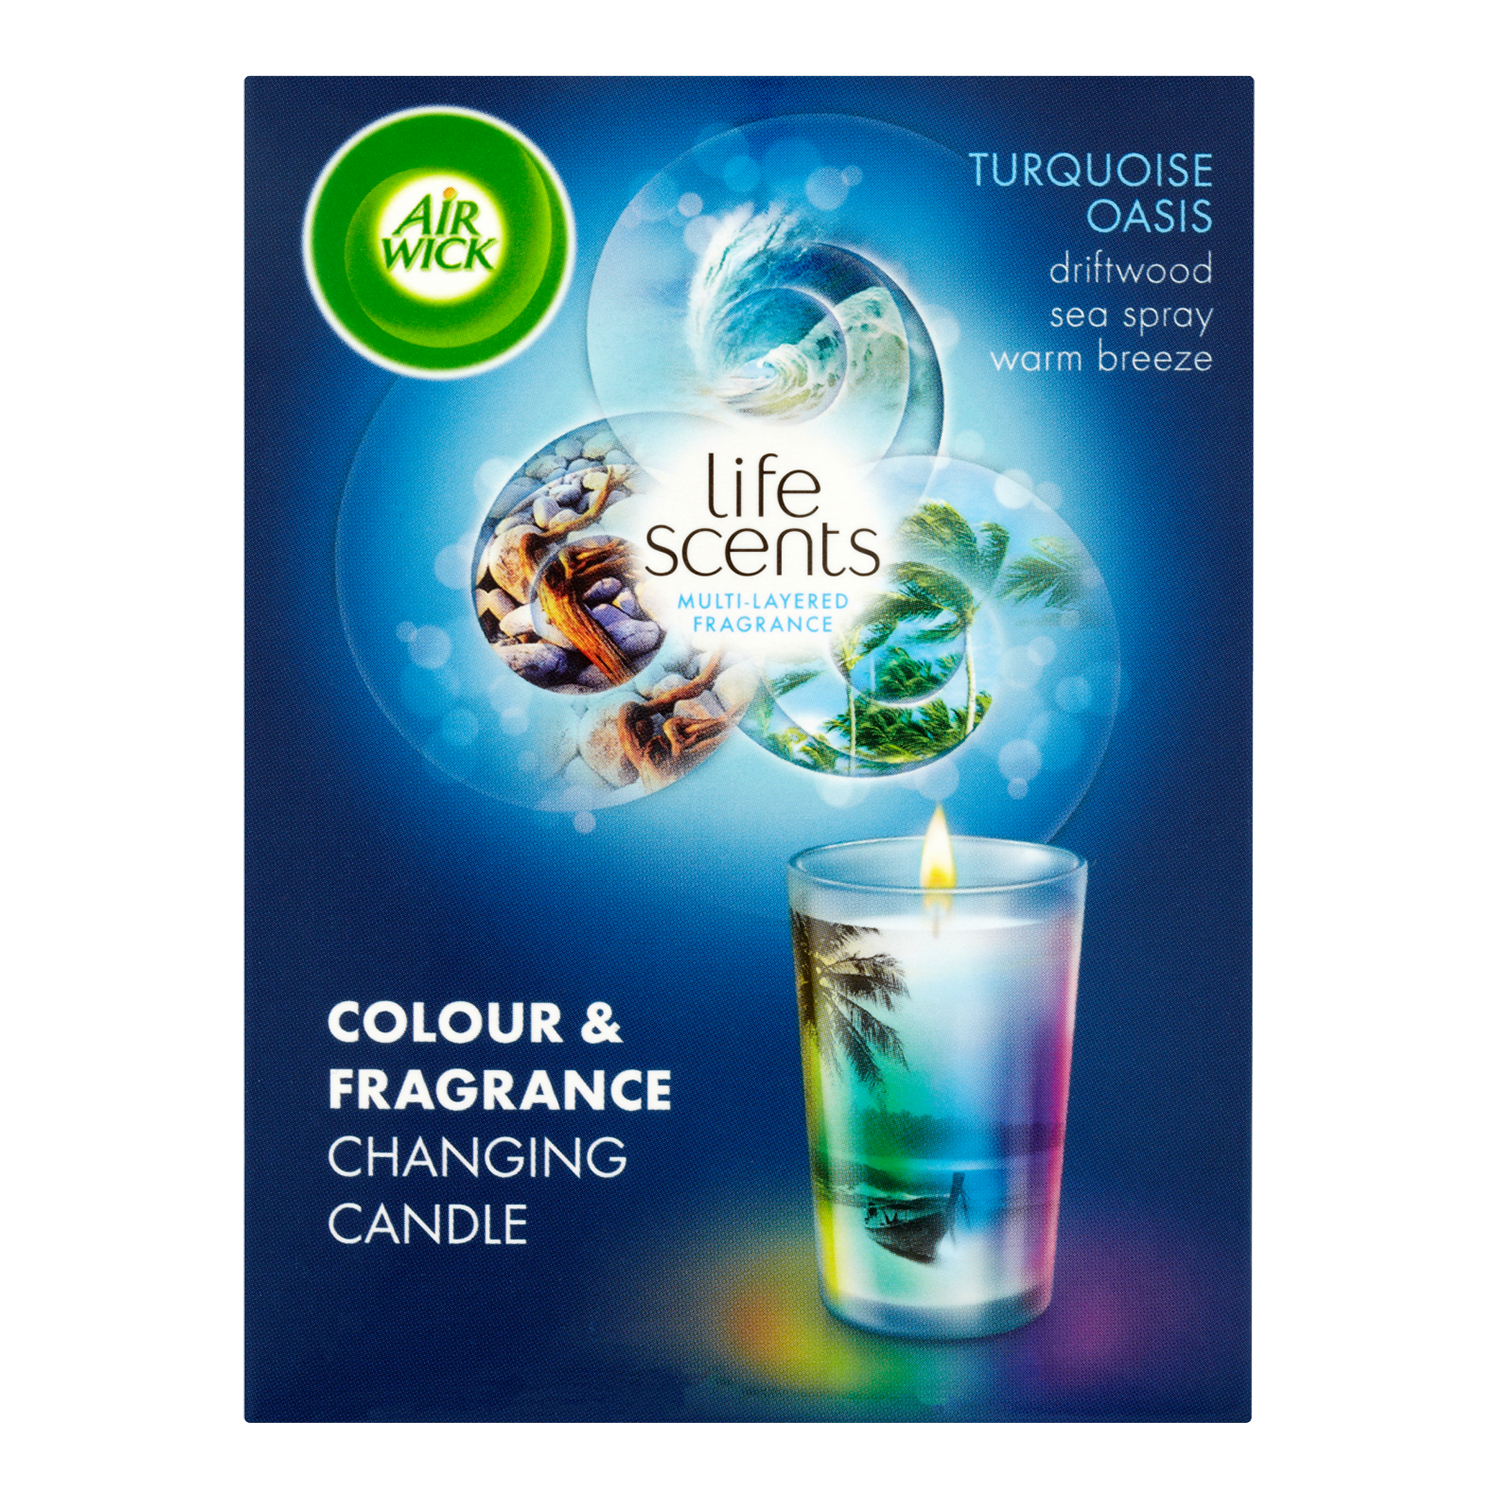 Air Wick Life Scents Turquoise Oasis